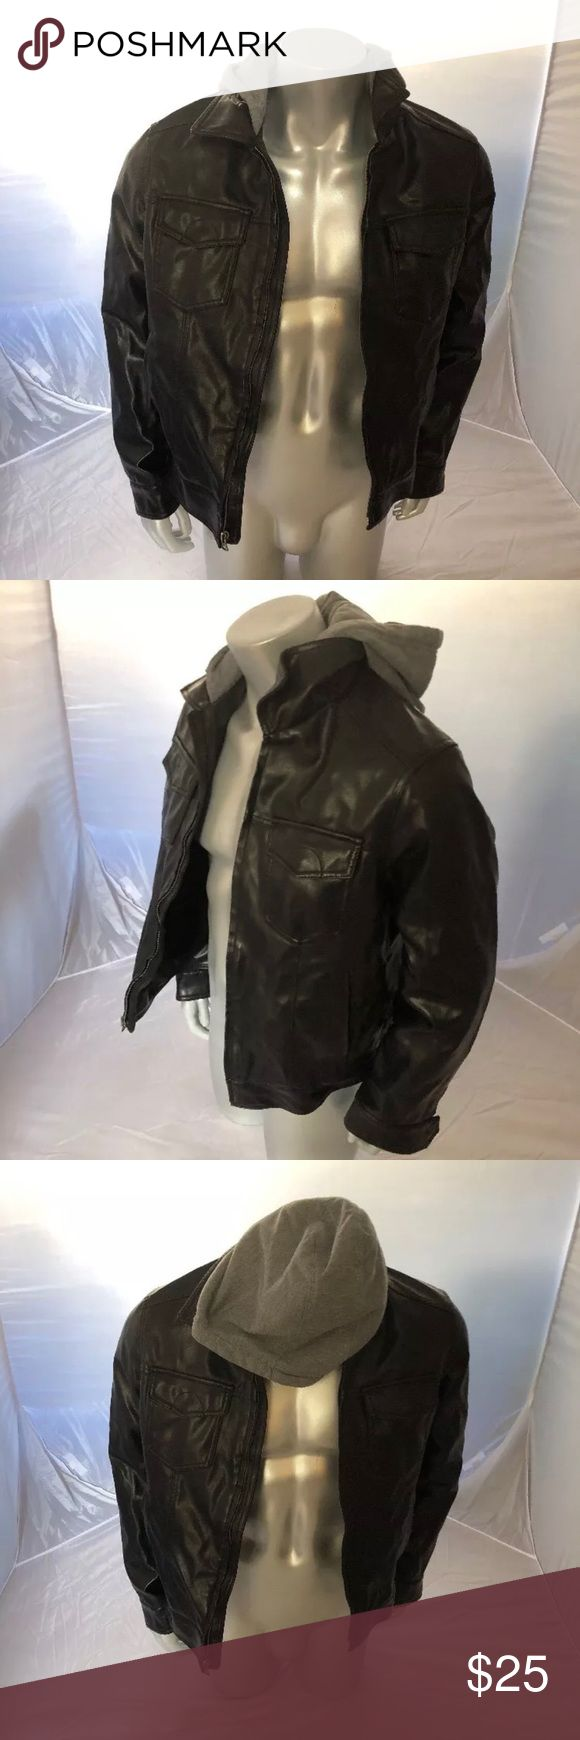 Signature LEVIS Black Men's Faux Leather Jacket Signature LEVIS Black Men's Faux Leather Jacket w/ Sewn In Grey Hoodie Size M Levi's Jackets & Coats Bomber & Varsity